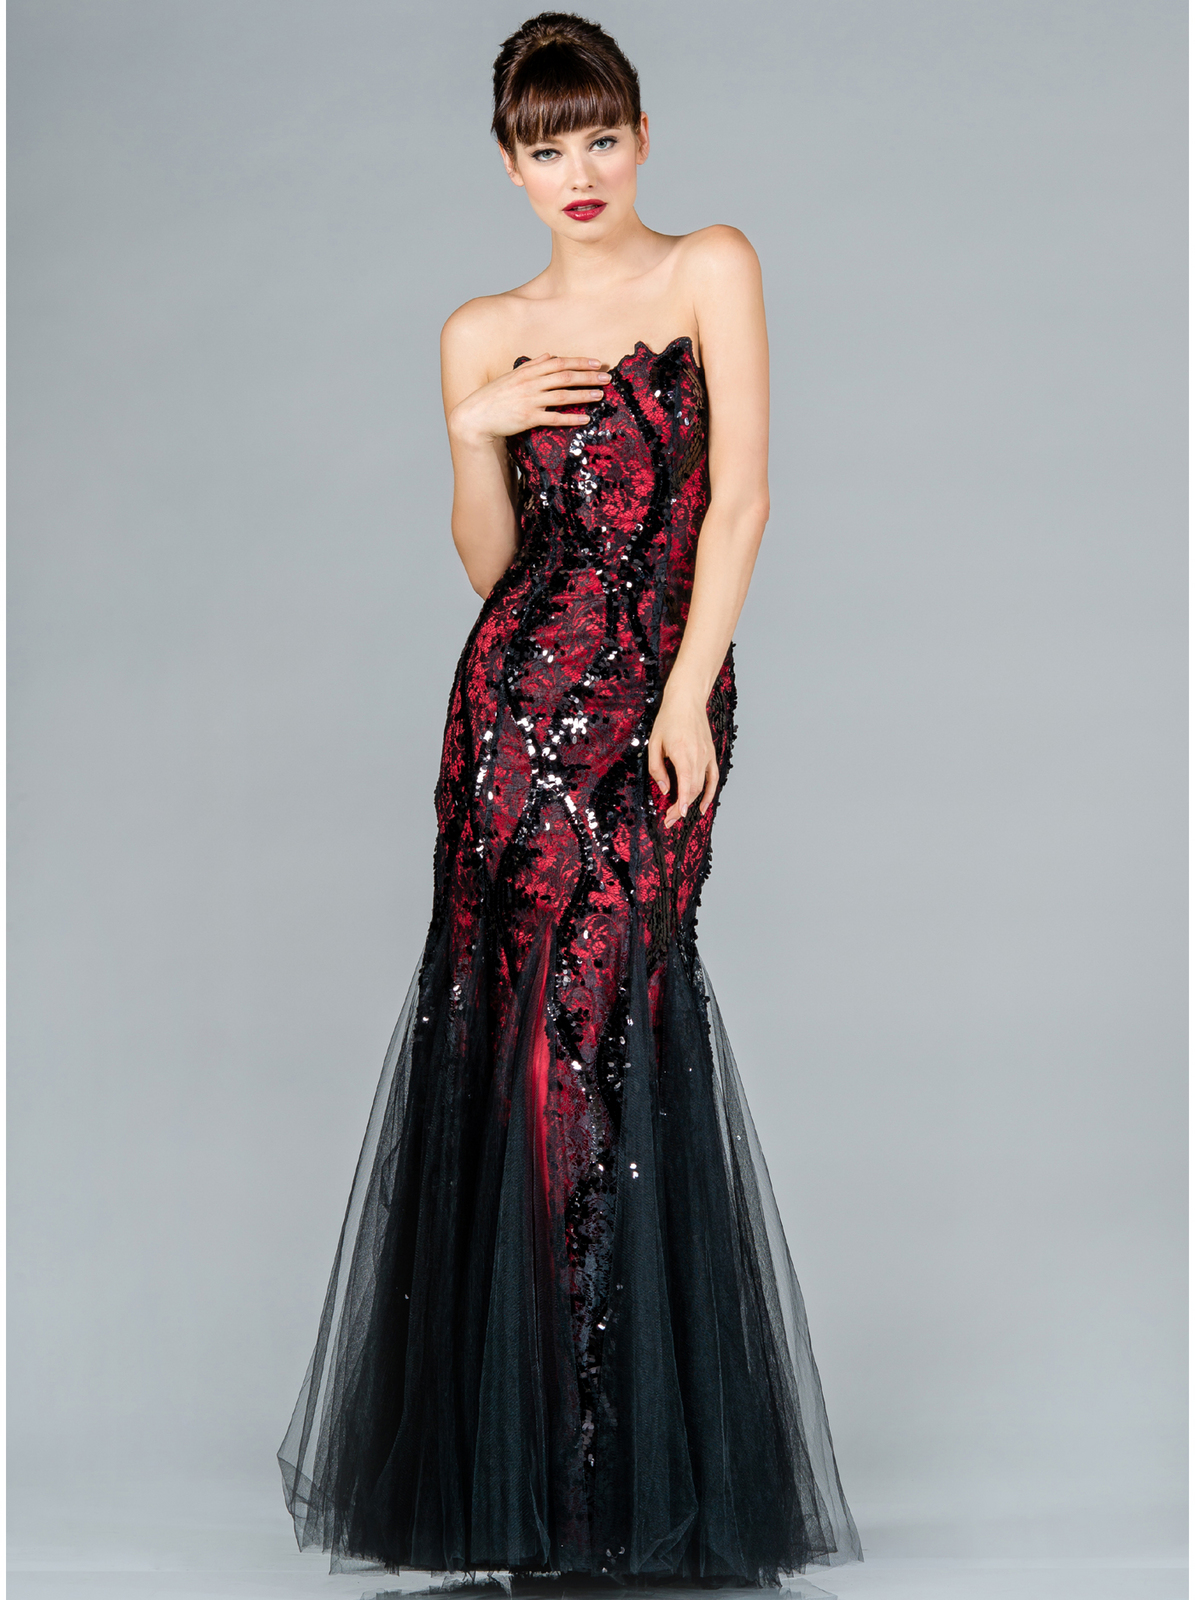 Black and Red Lace Prom Dress | Sung Boutique L.A.